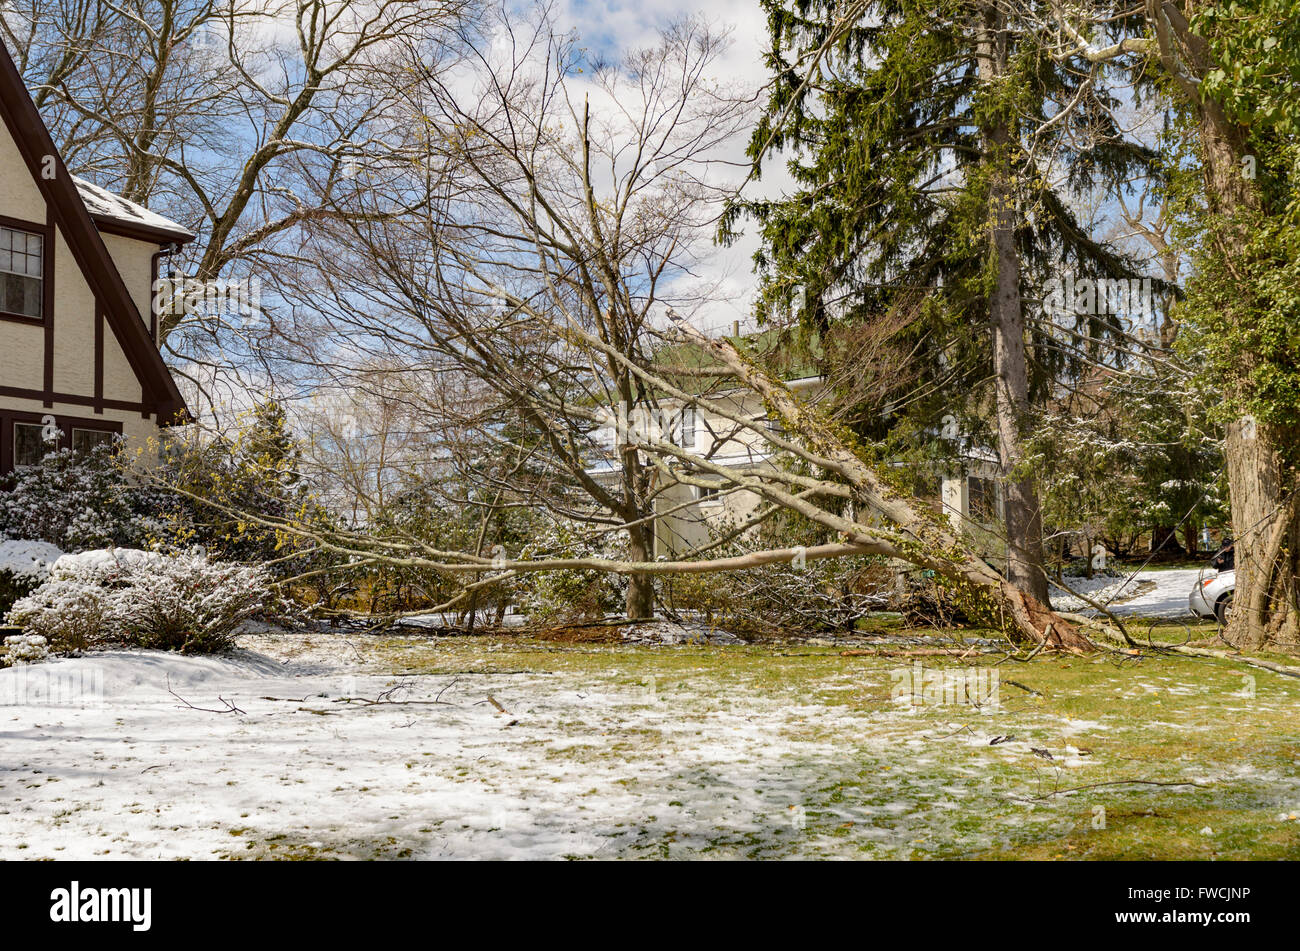 Cold Weather Damage Stock Photos & Cold Weather Damage Stock Images ...